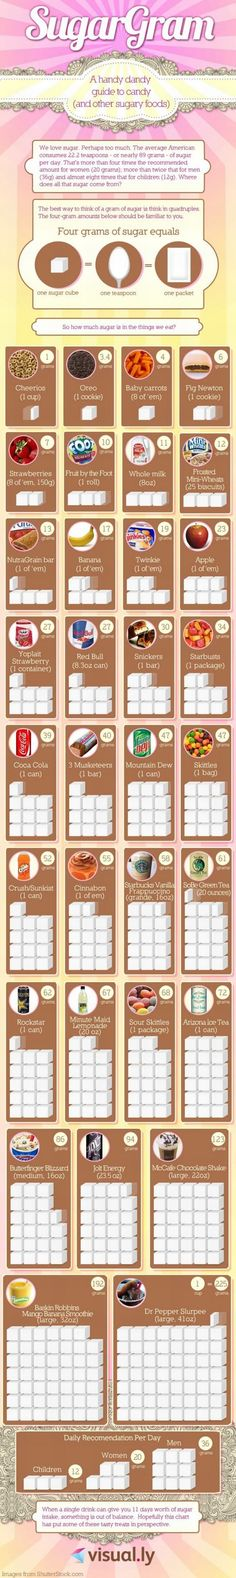 Lowdown on Sugar Grams for some of our favorites.